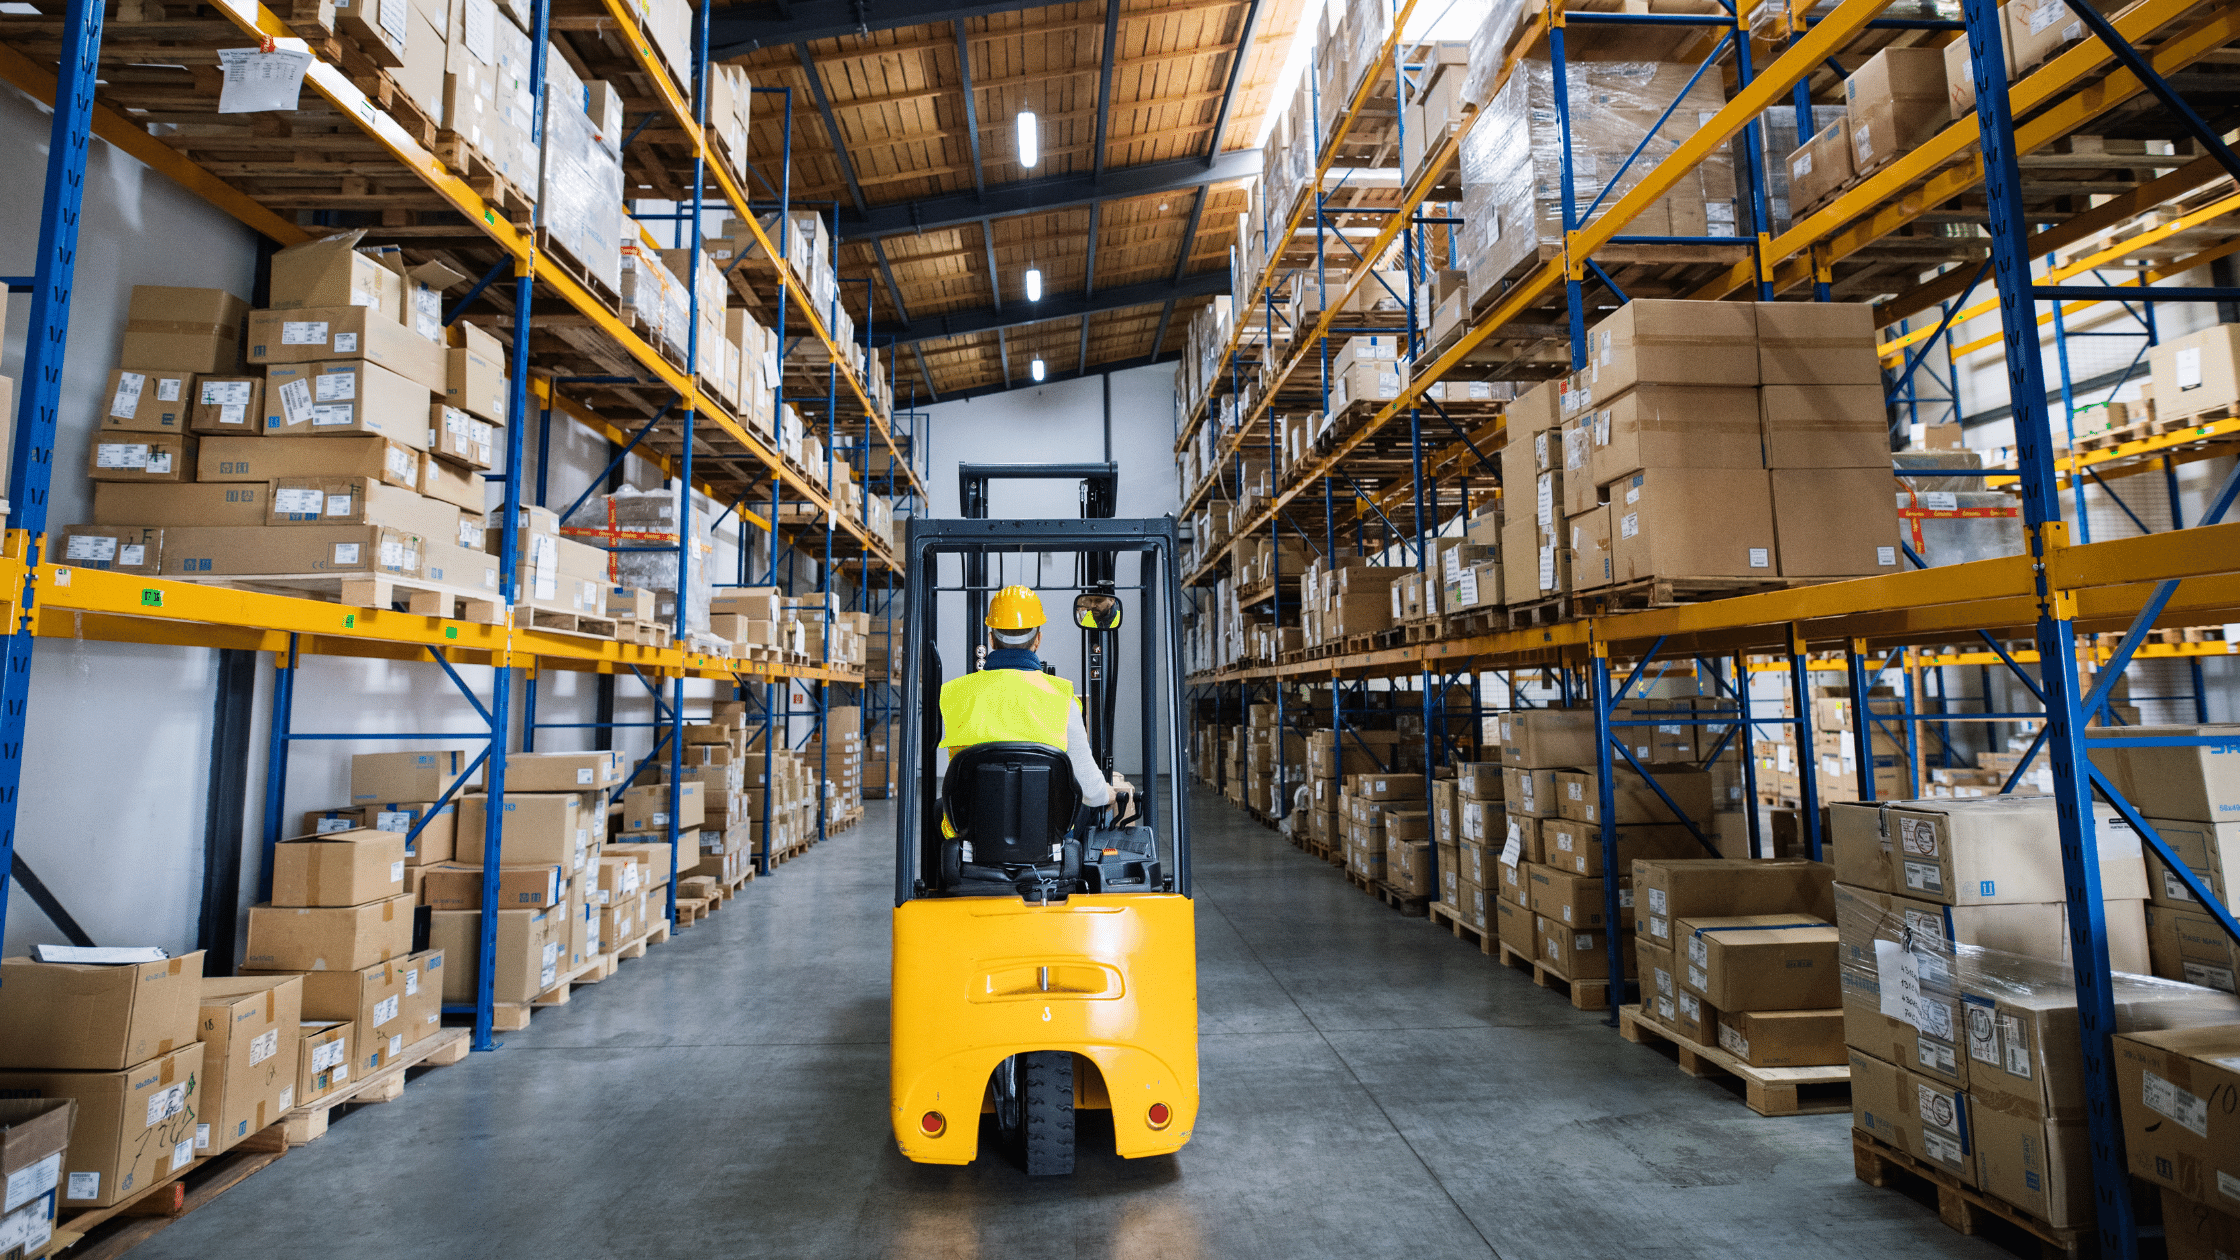 The Practical Warehouse Safety & Organization Guide